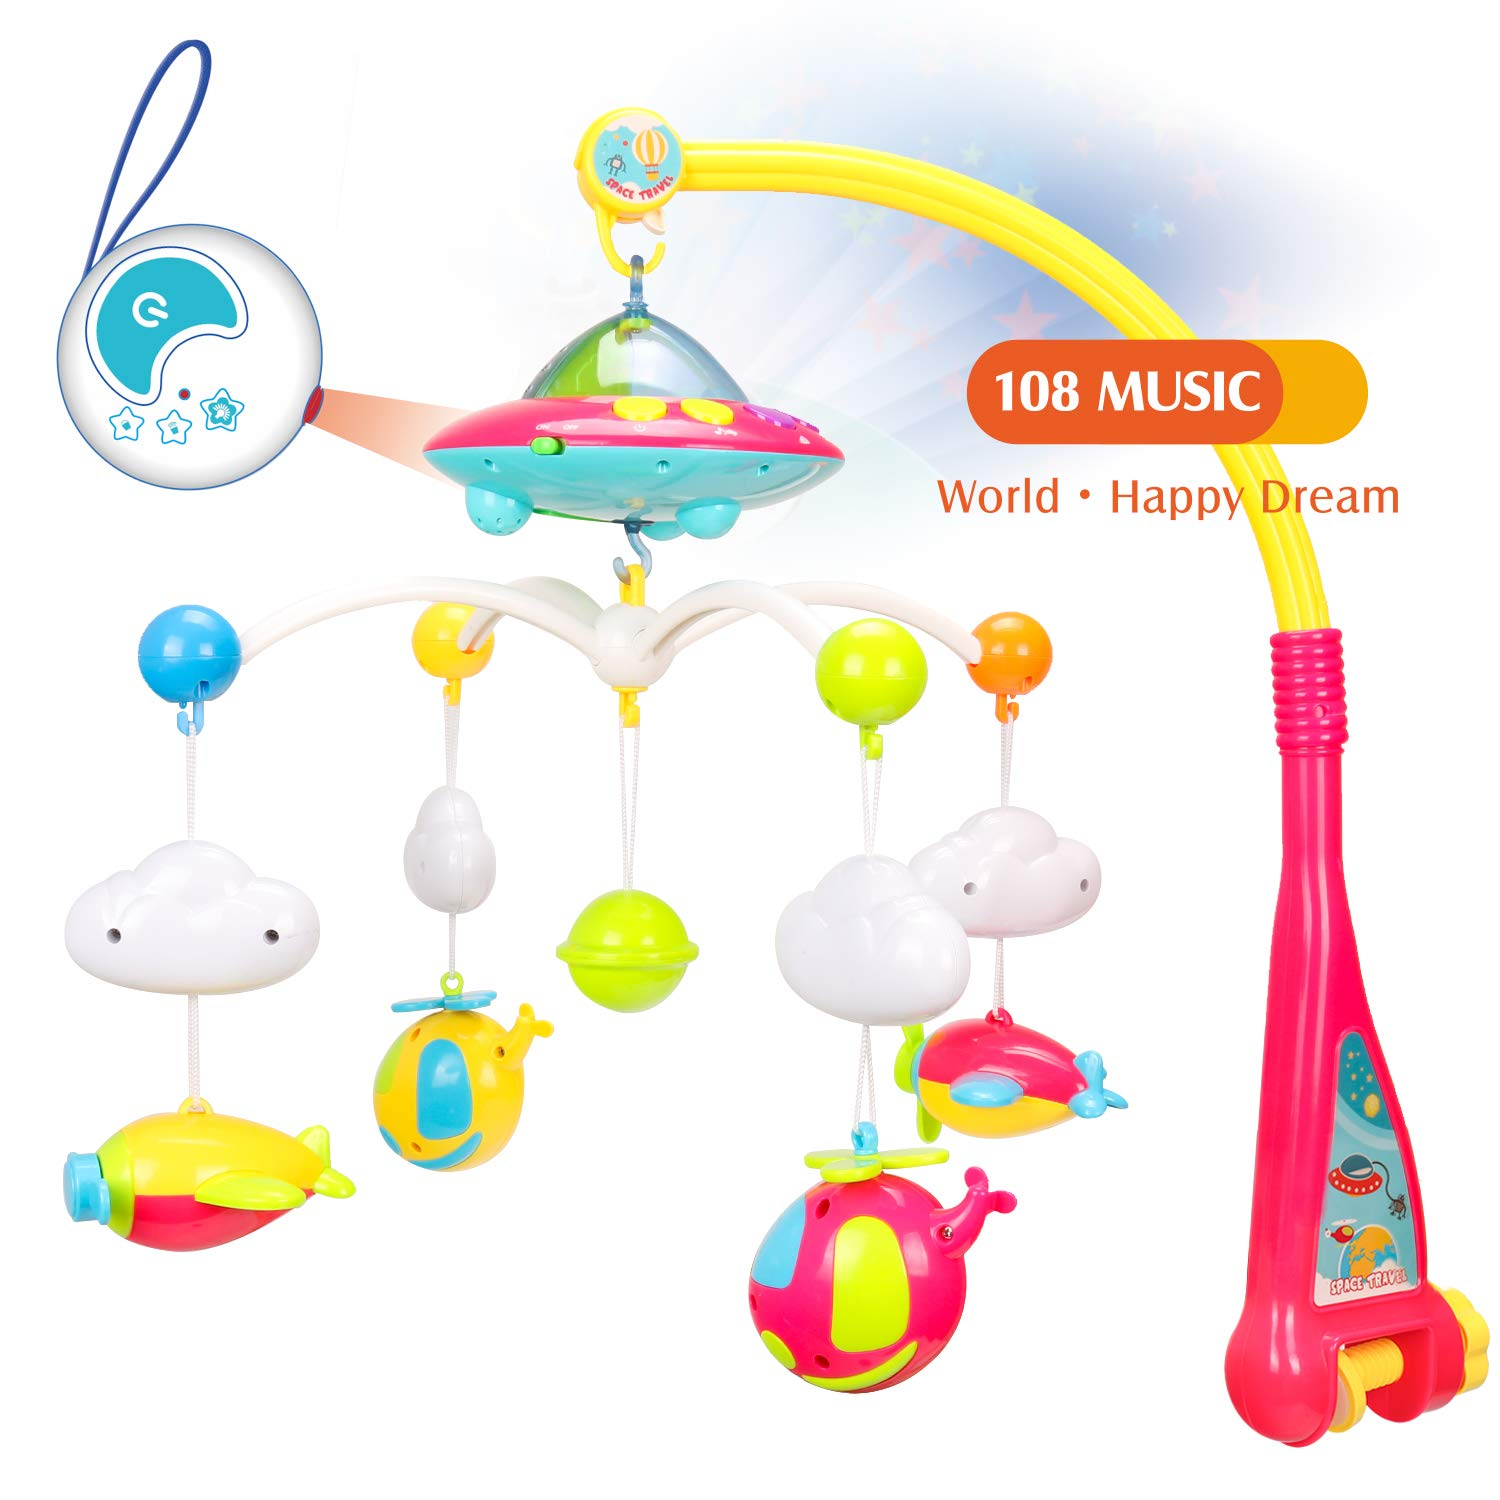 EXERCISE N PLAY Baby Mobiles, Crib Musical Mobiles, Nursery Bed Bell with Lights and Music, Bed Decoration Toy Hanging Rotating Rattles Toy for Infant Newborn Sleep by EXERCISE N PLAY